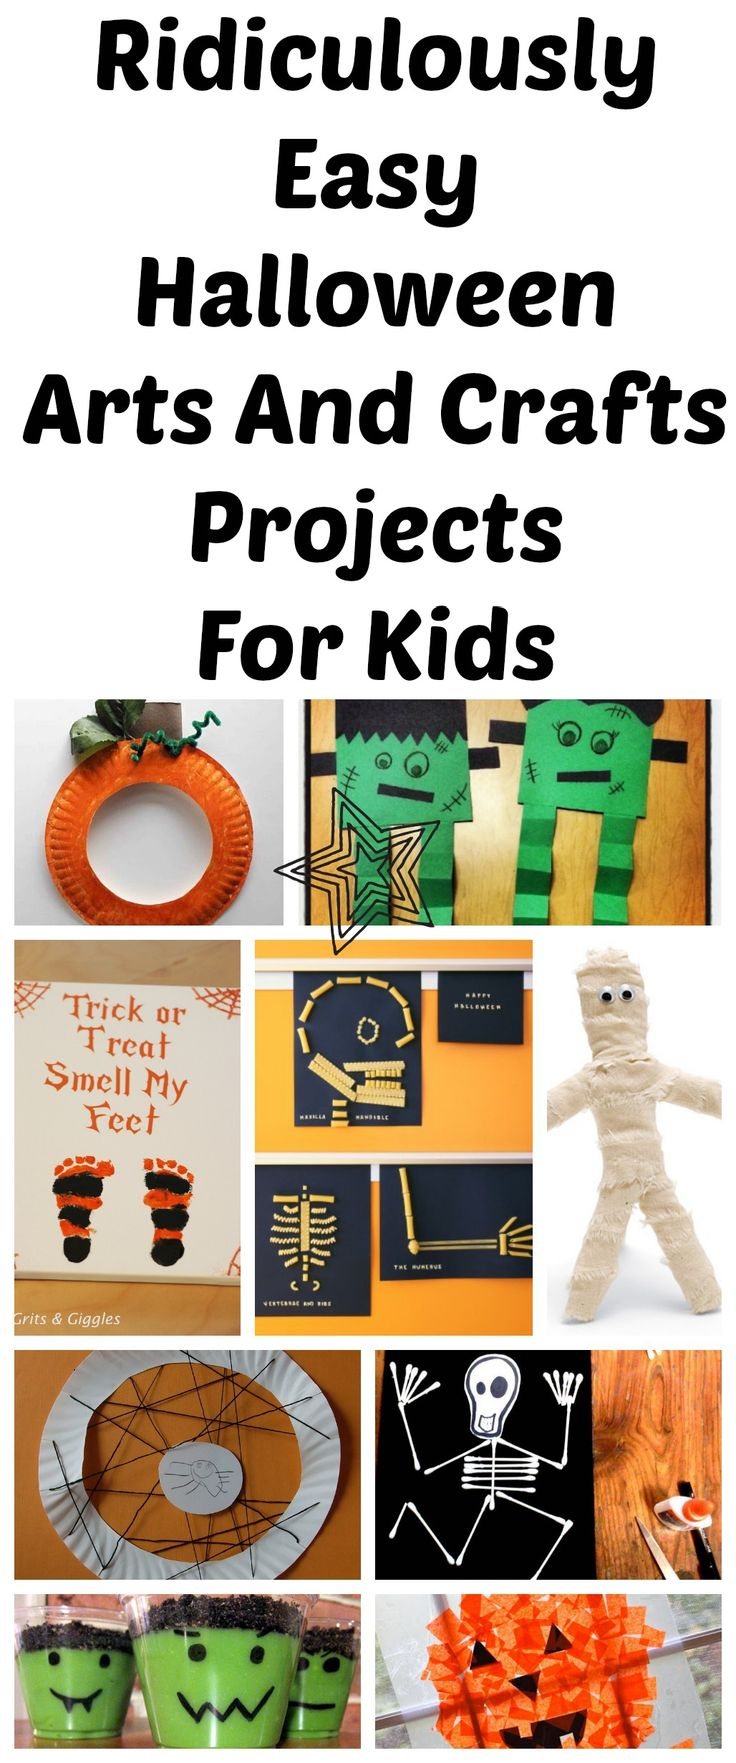 10 Ridiculously Easy Halloween Arts And Crafts Projects To Do With Kids | Lady and the Blog